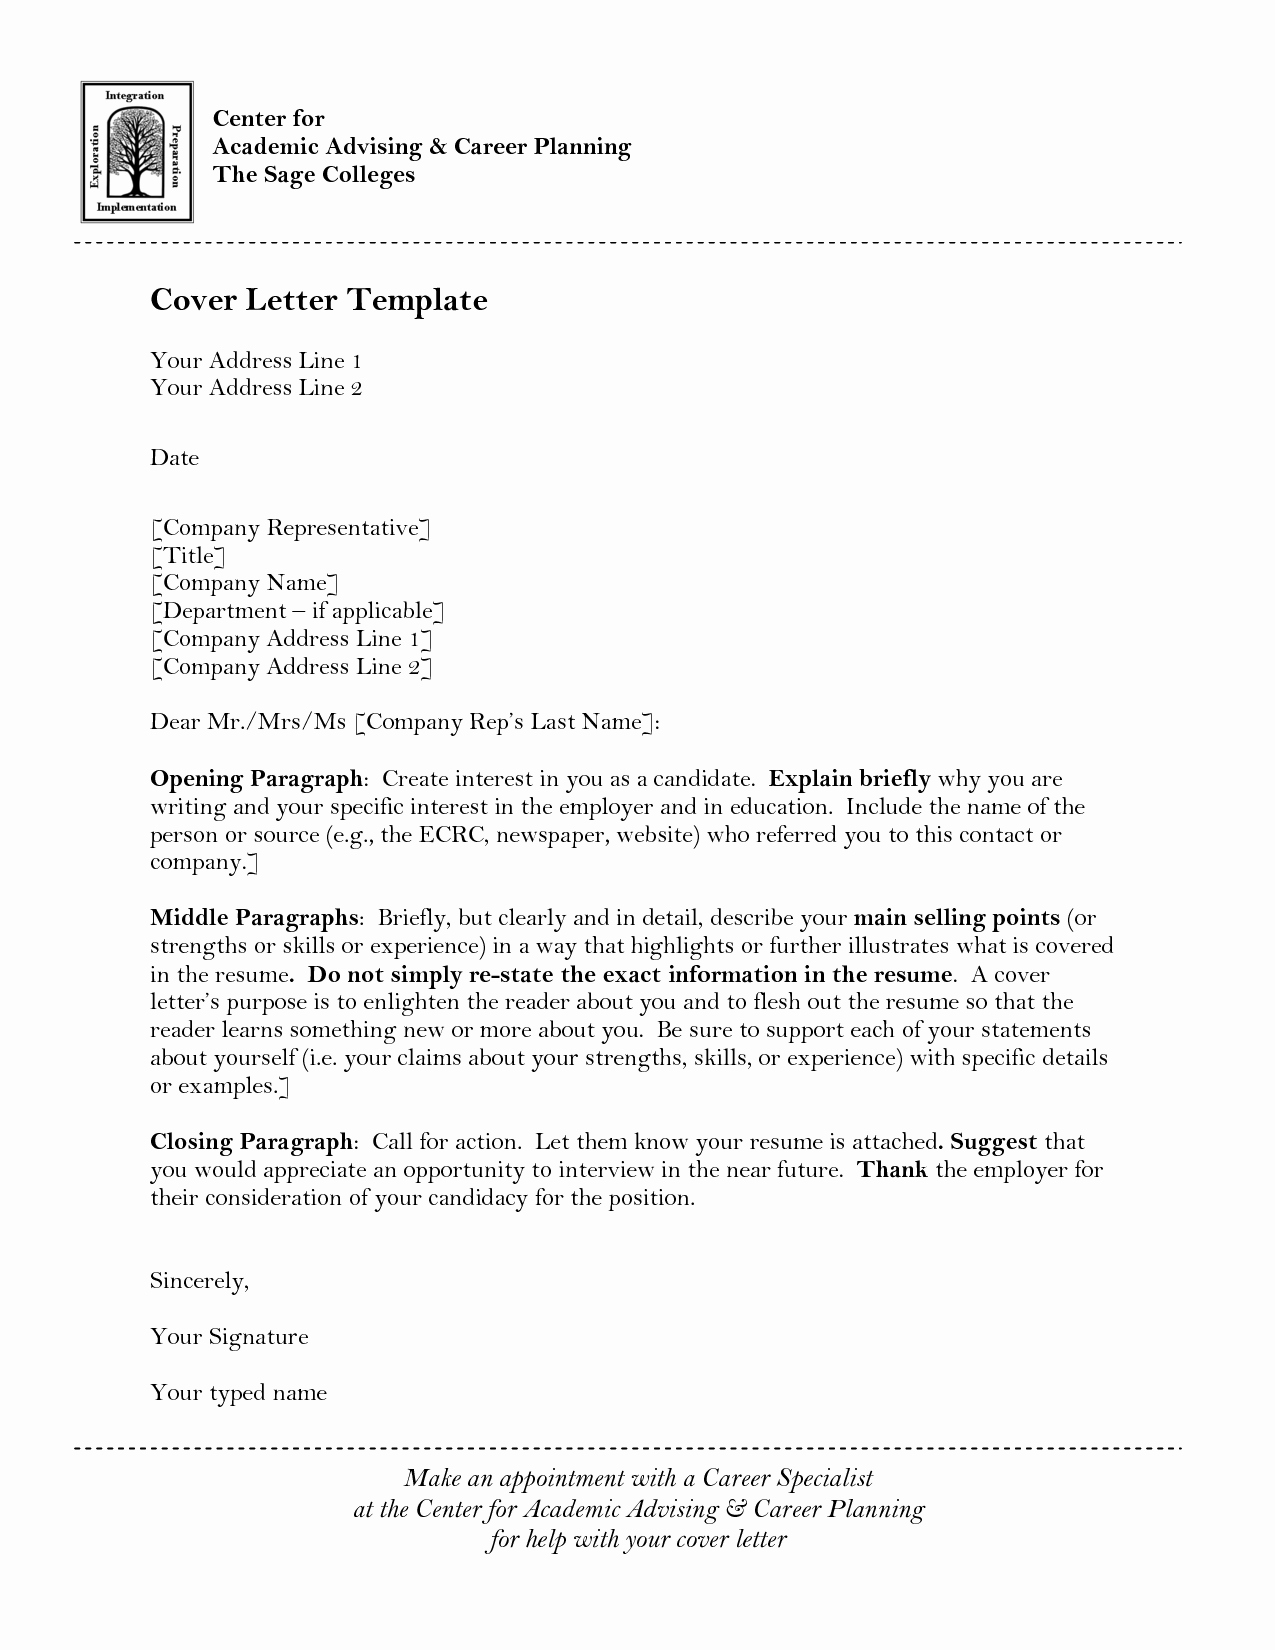 Sample Application Letter for Teaching Position In College